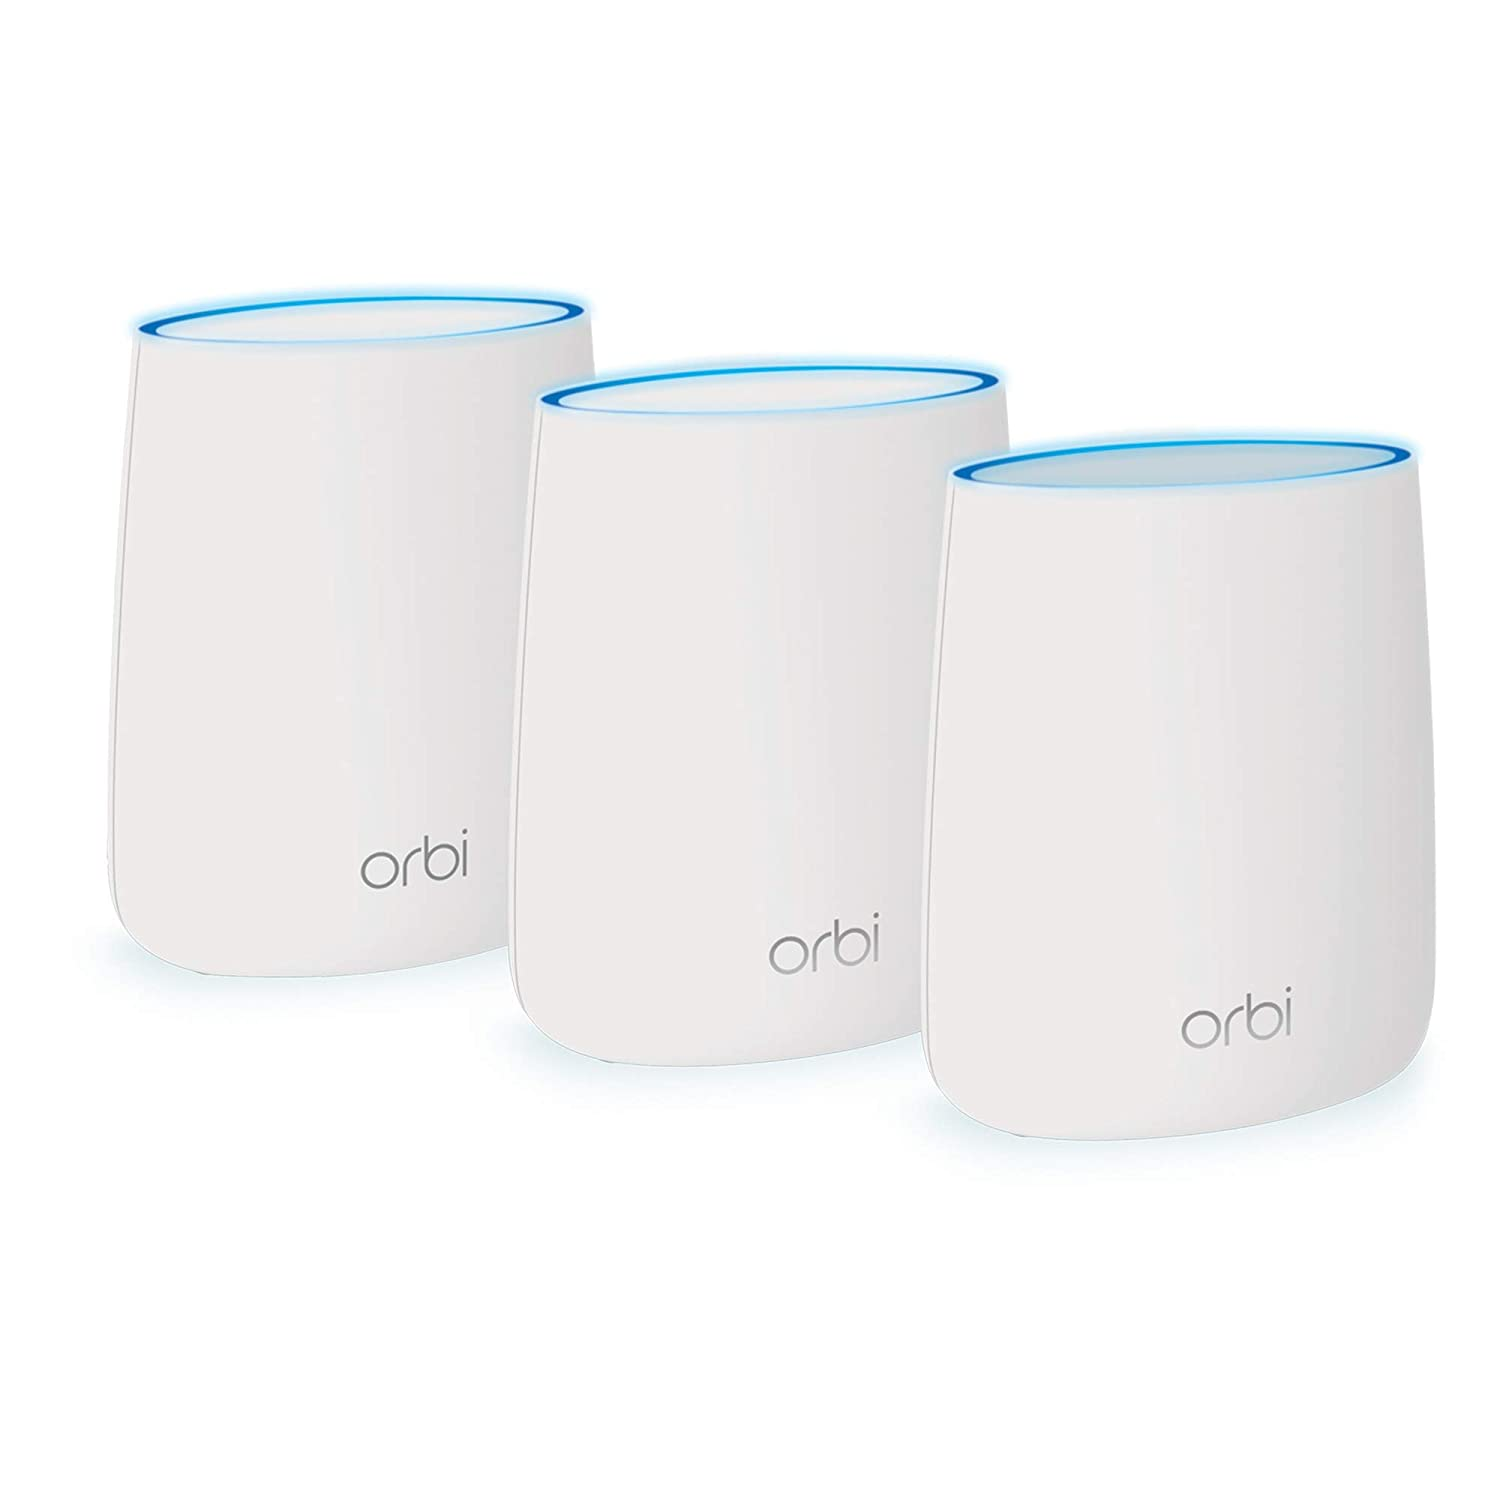 Orbi For Big Home Mesh WiFi System With 2 satellite extenders